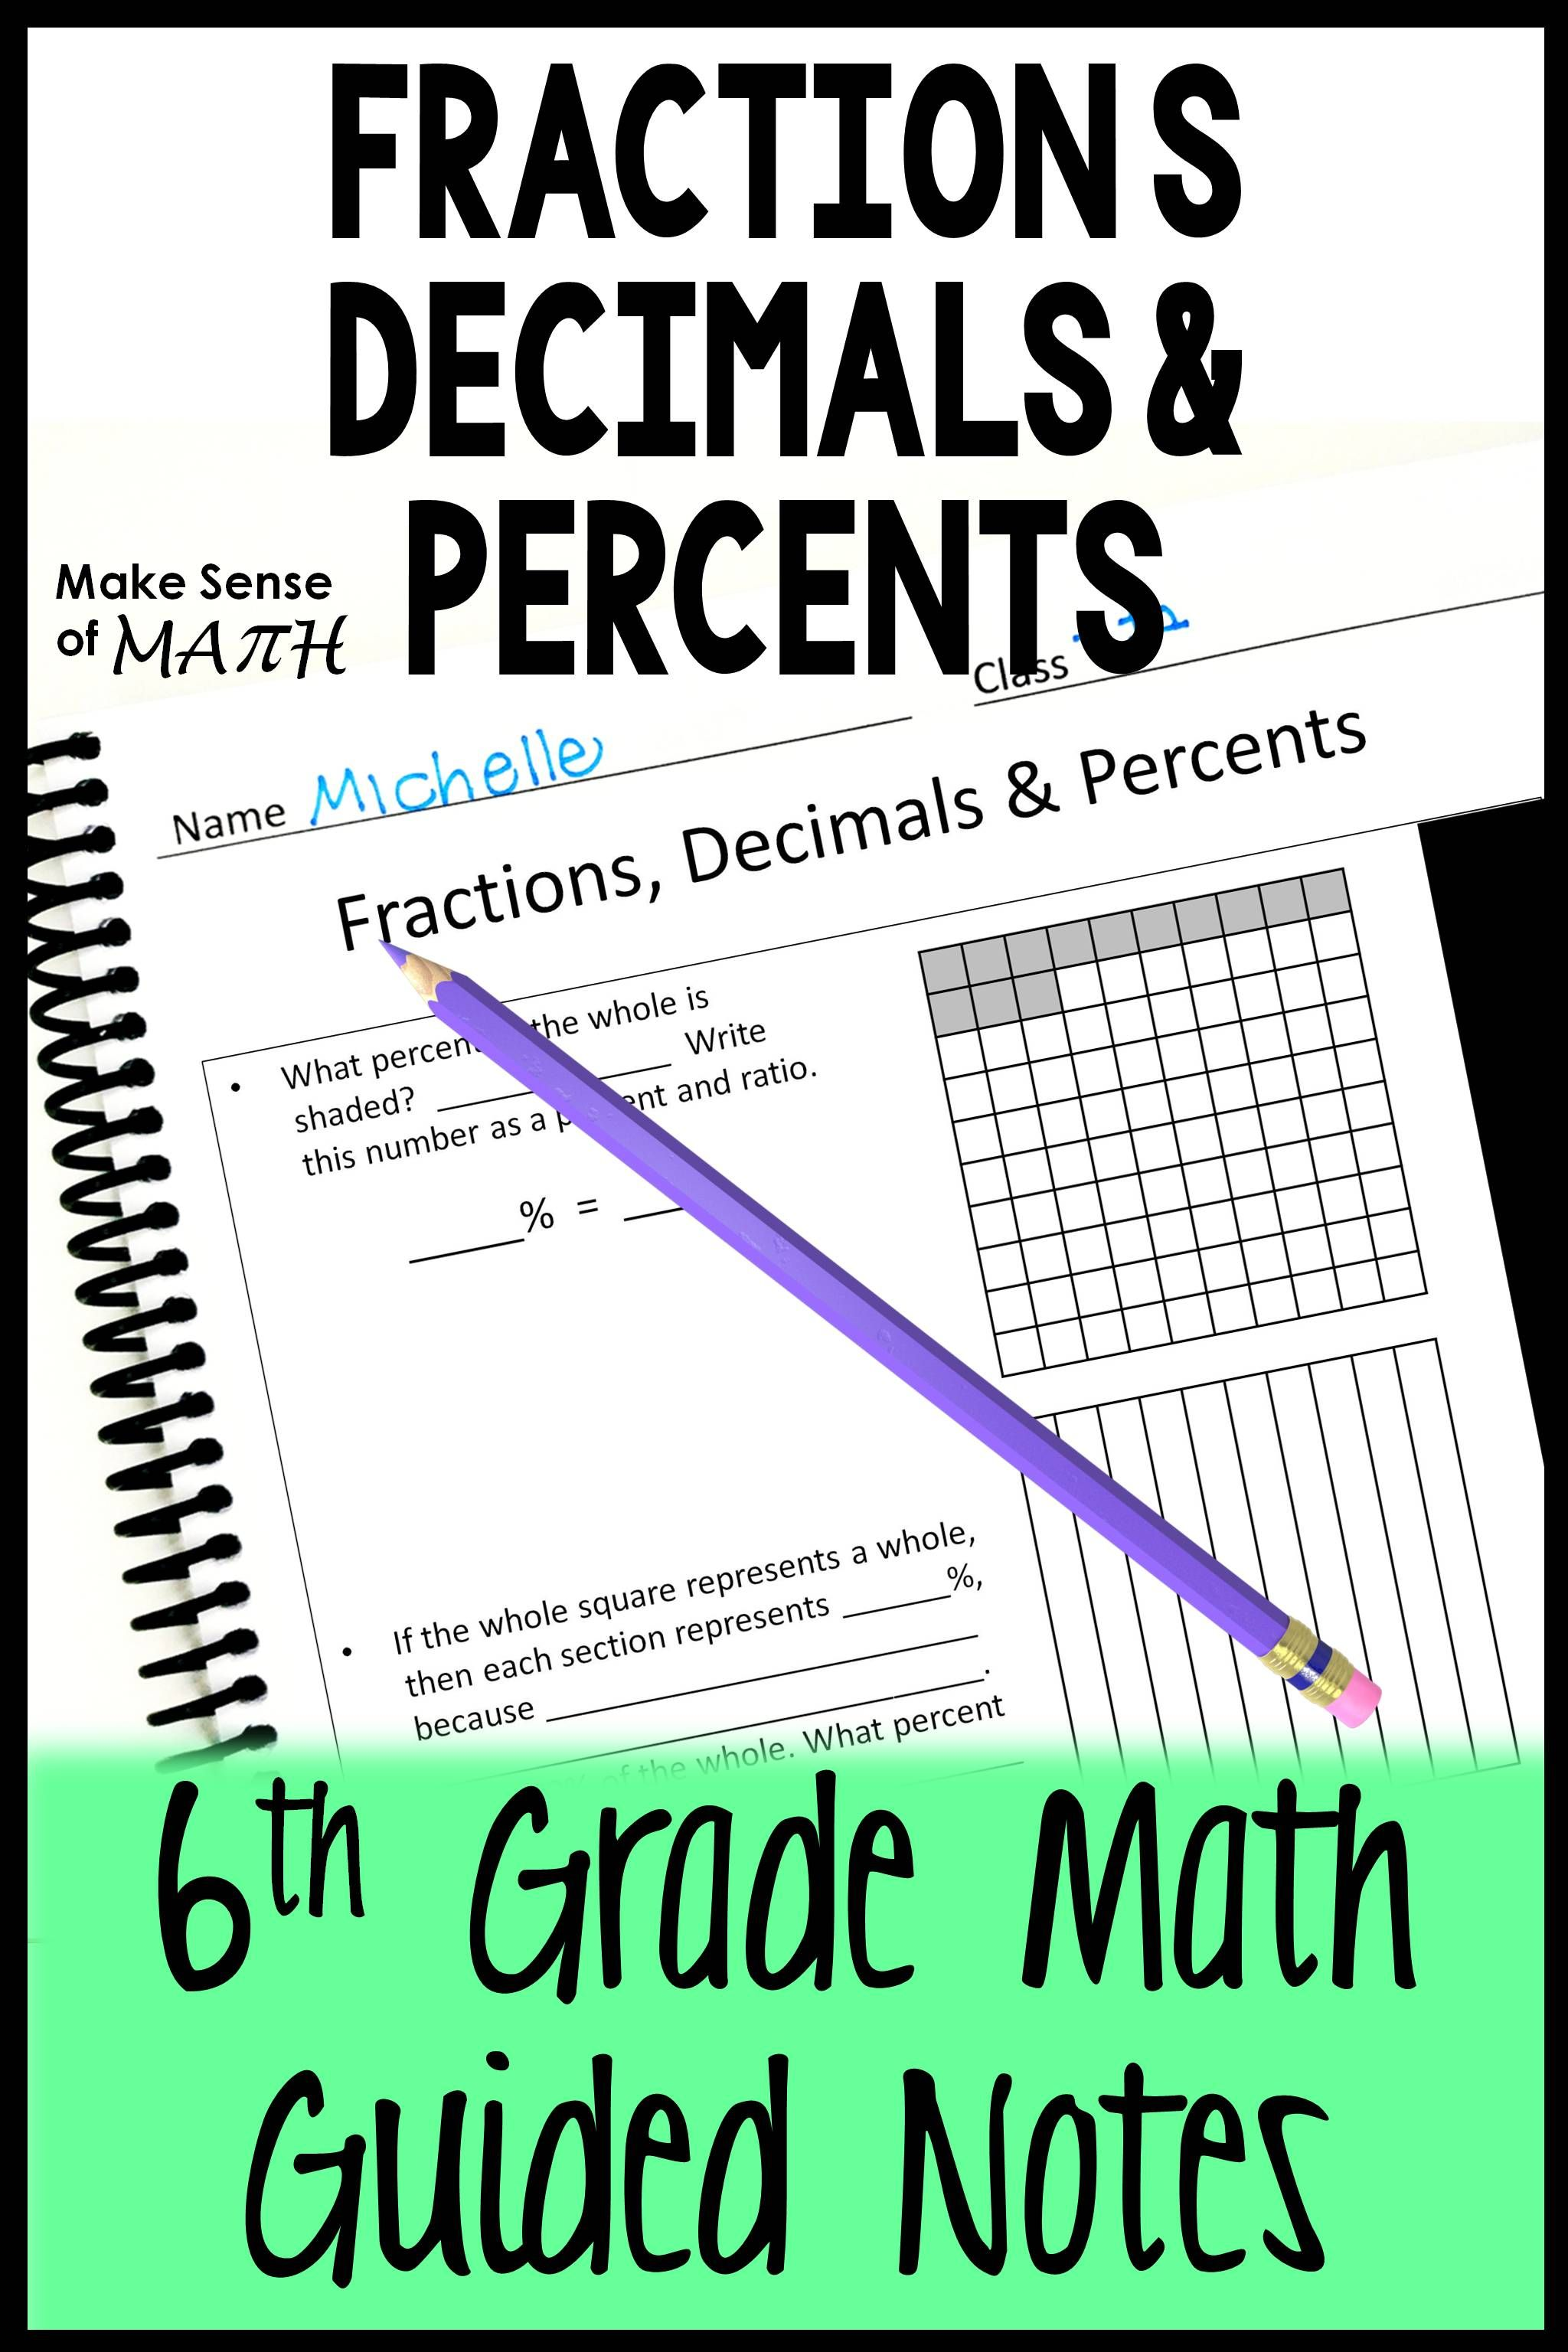 Fraction Decimal Percent Guided Notes